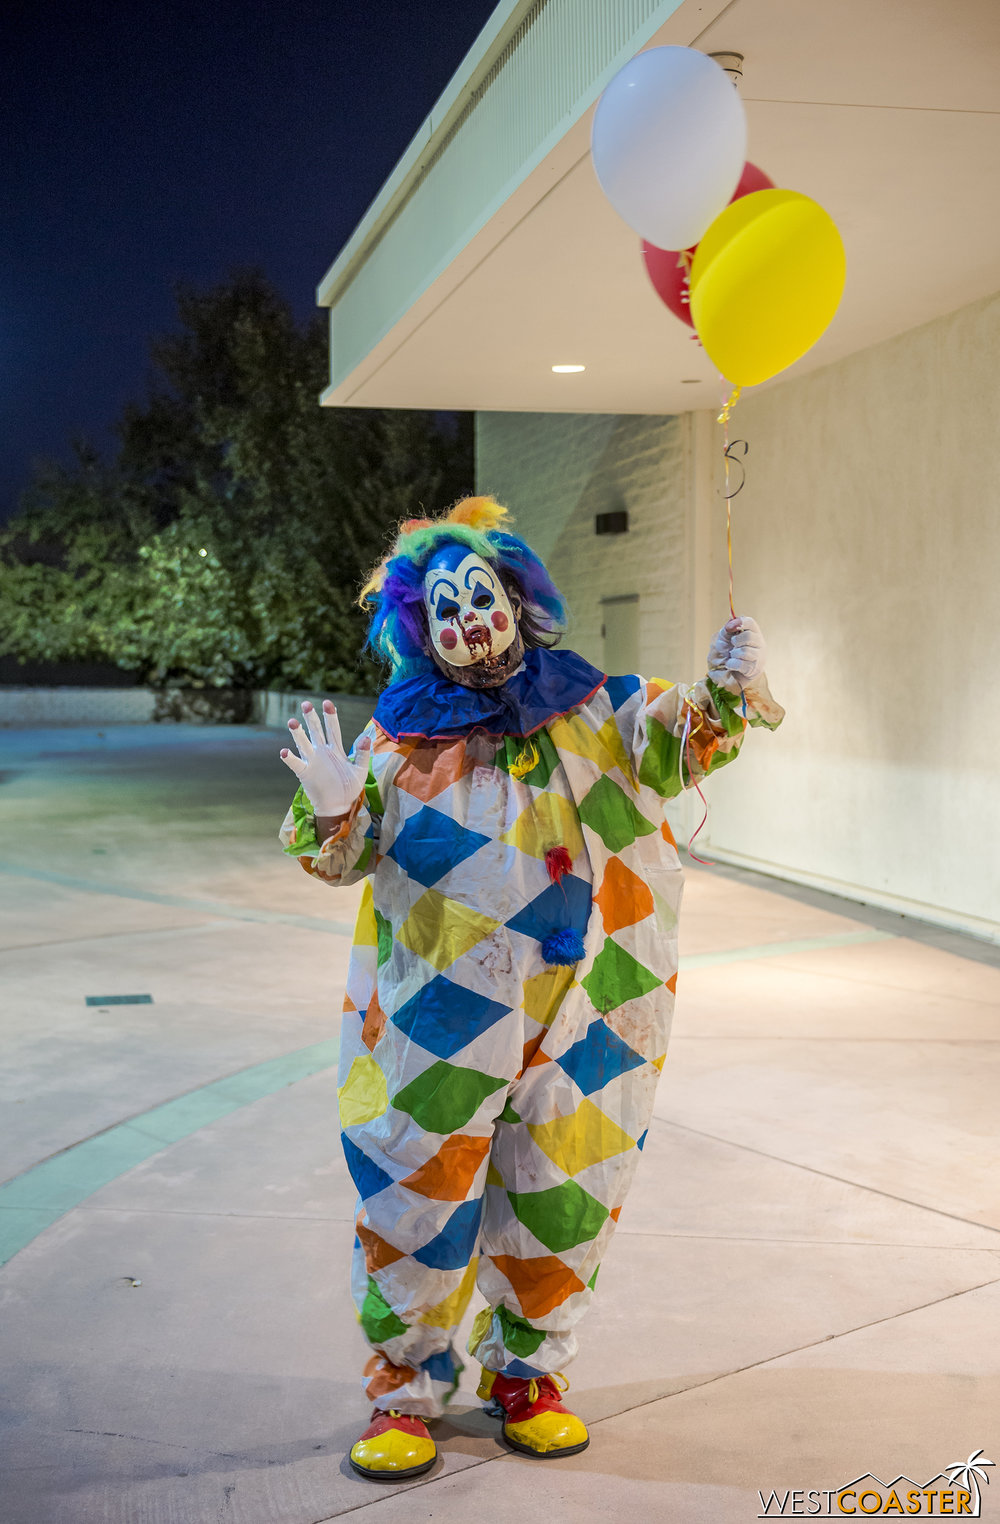 What a nice, adorable, friendly, super innocent, completely harmless looking clown with balloons!!